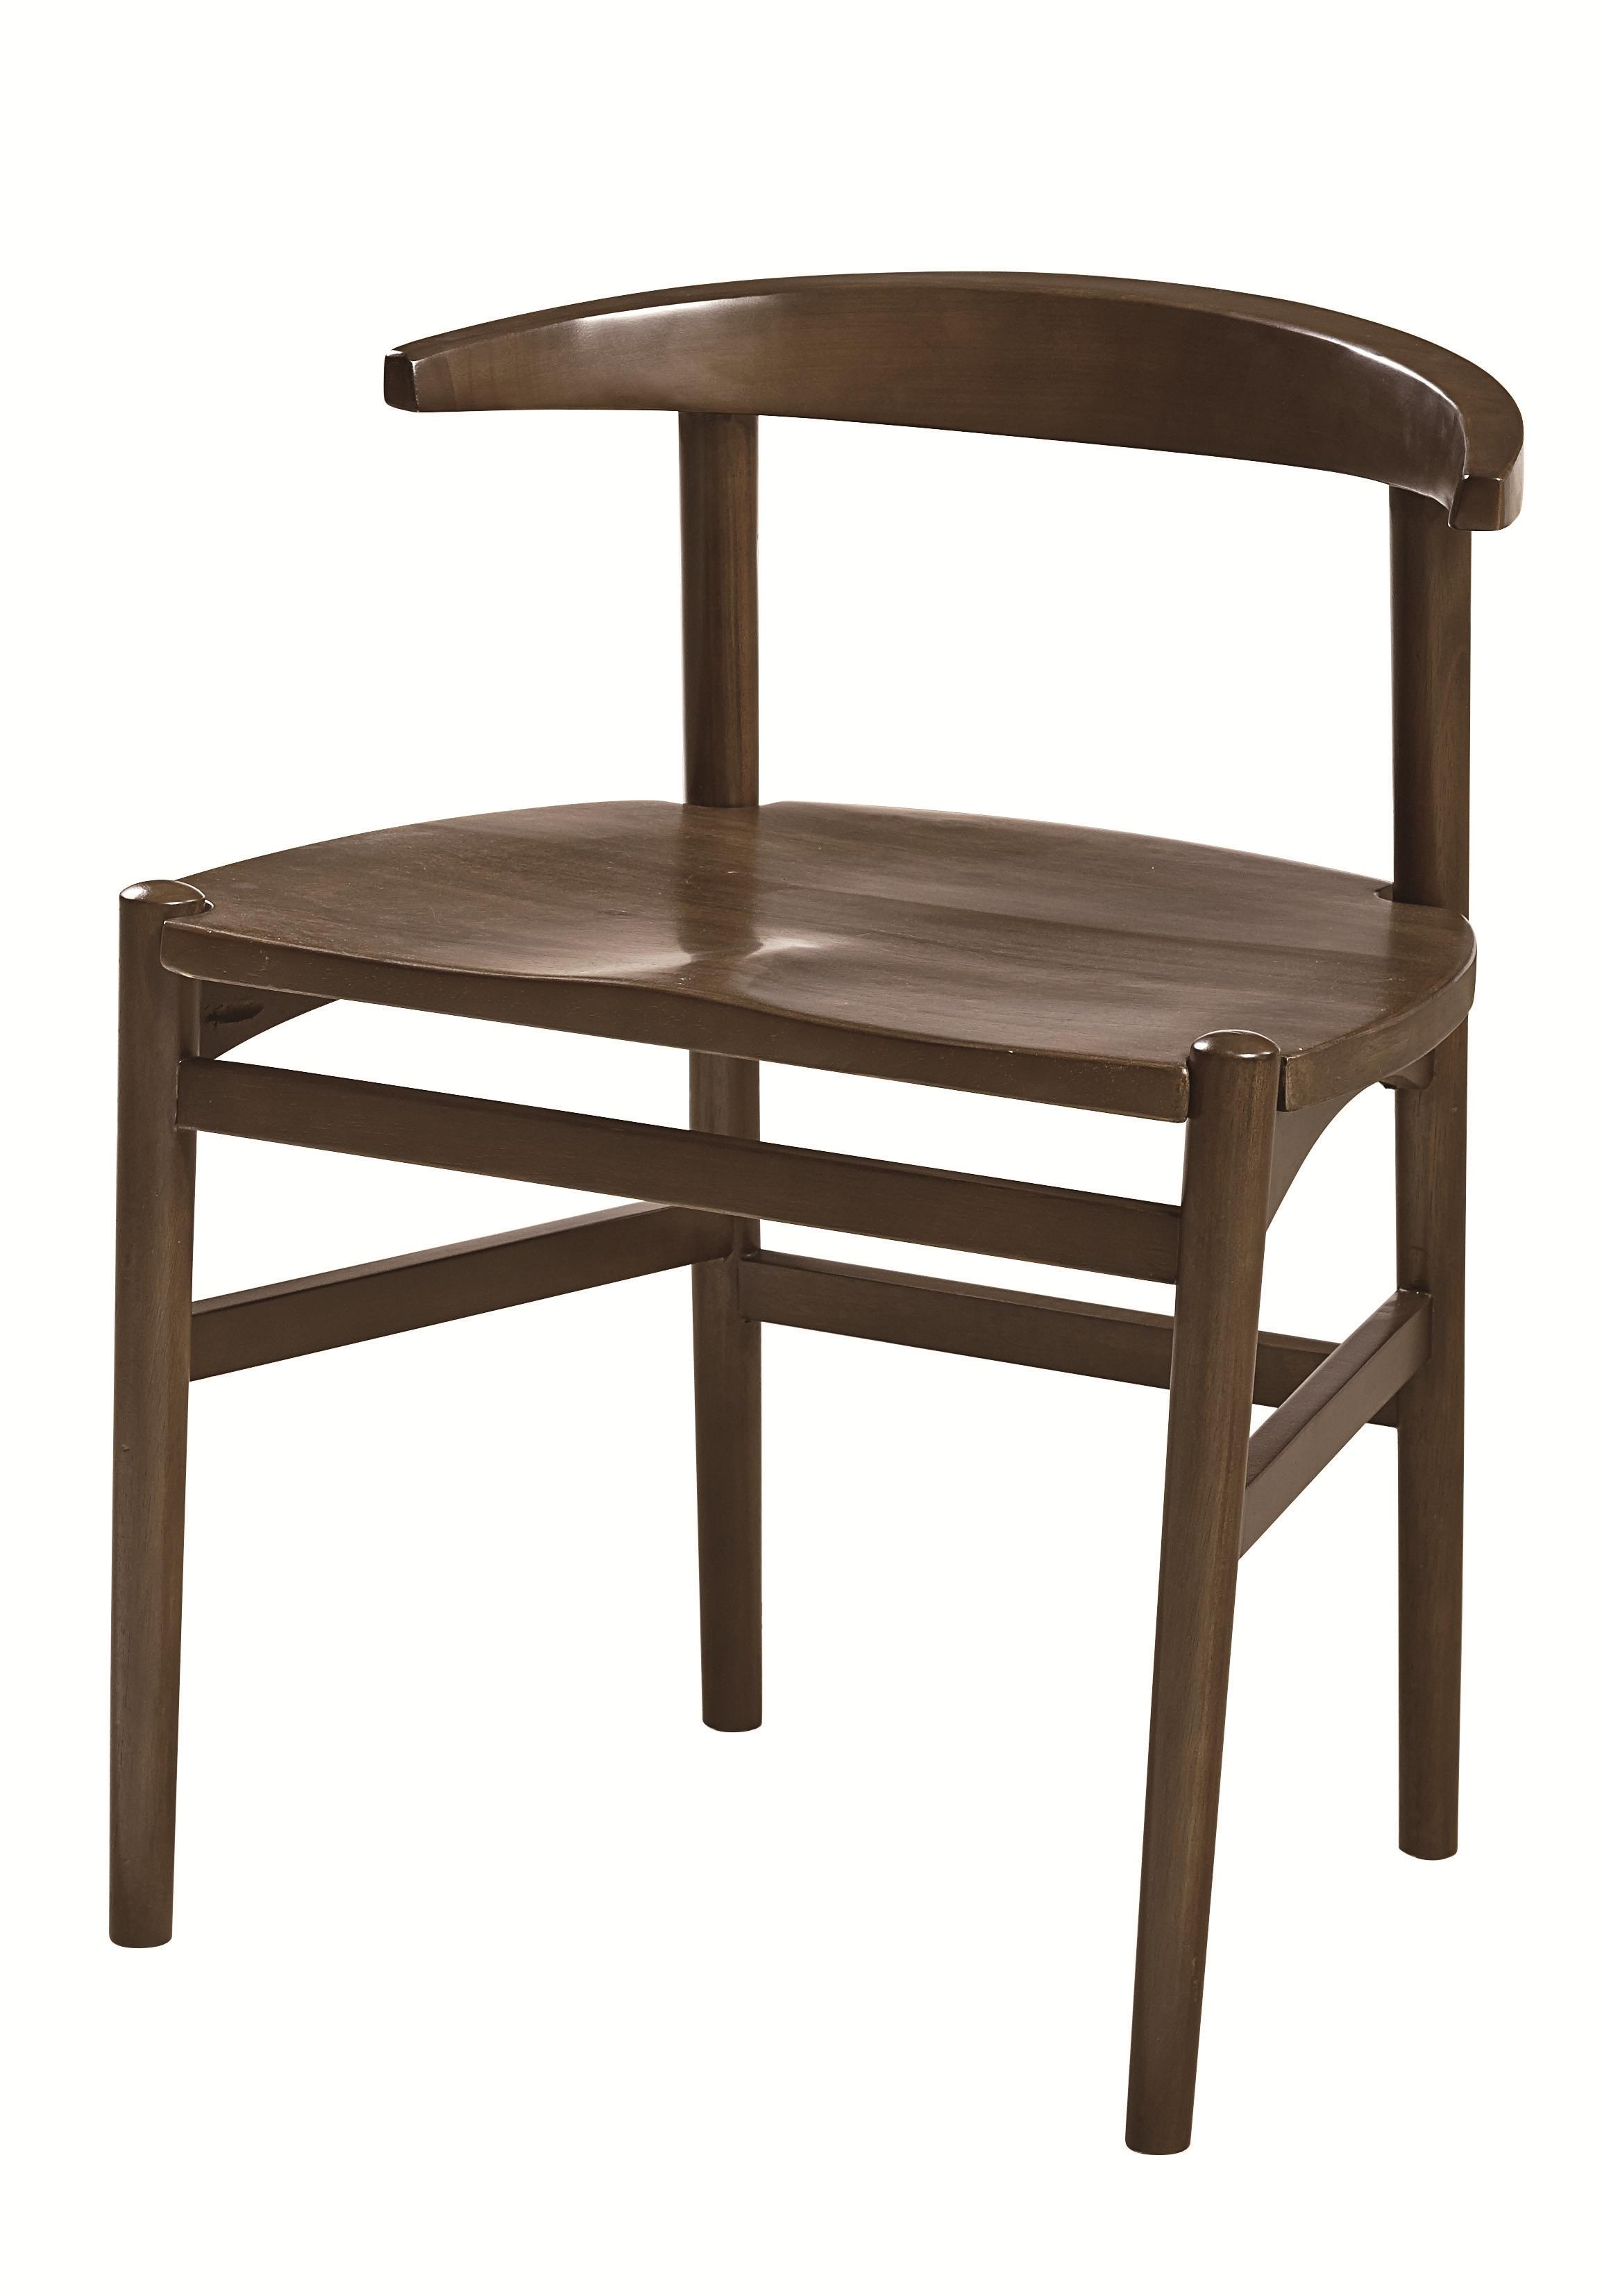 Hammary Mila Desk Chair - Item Number: 384-948